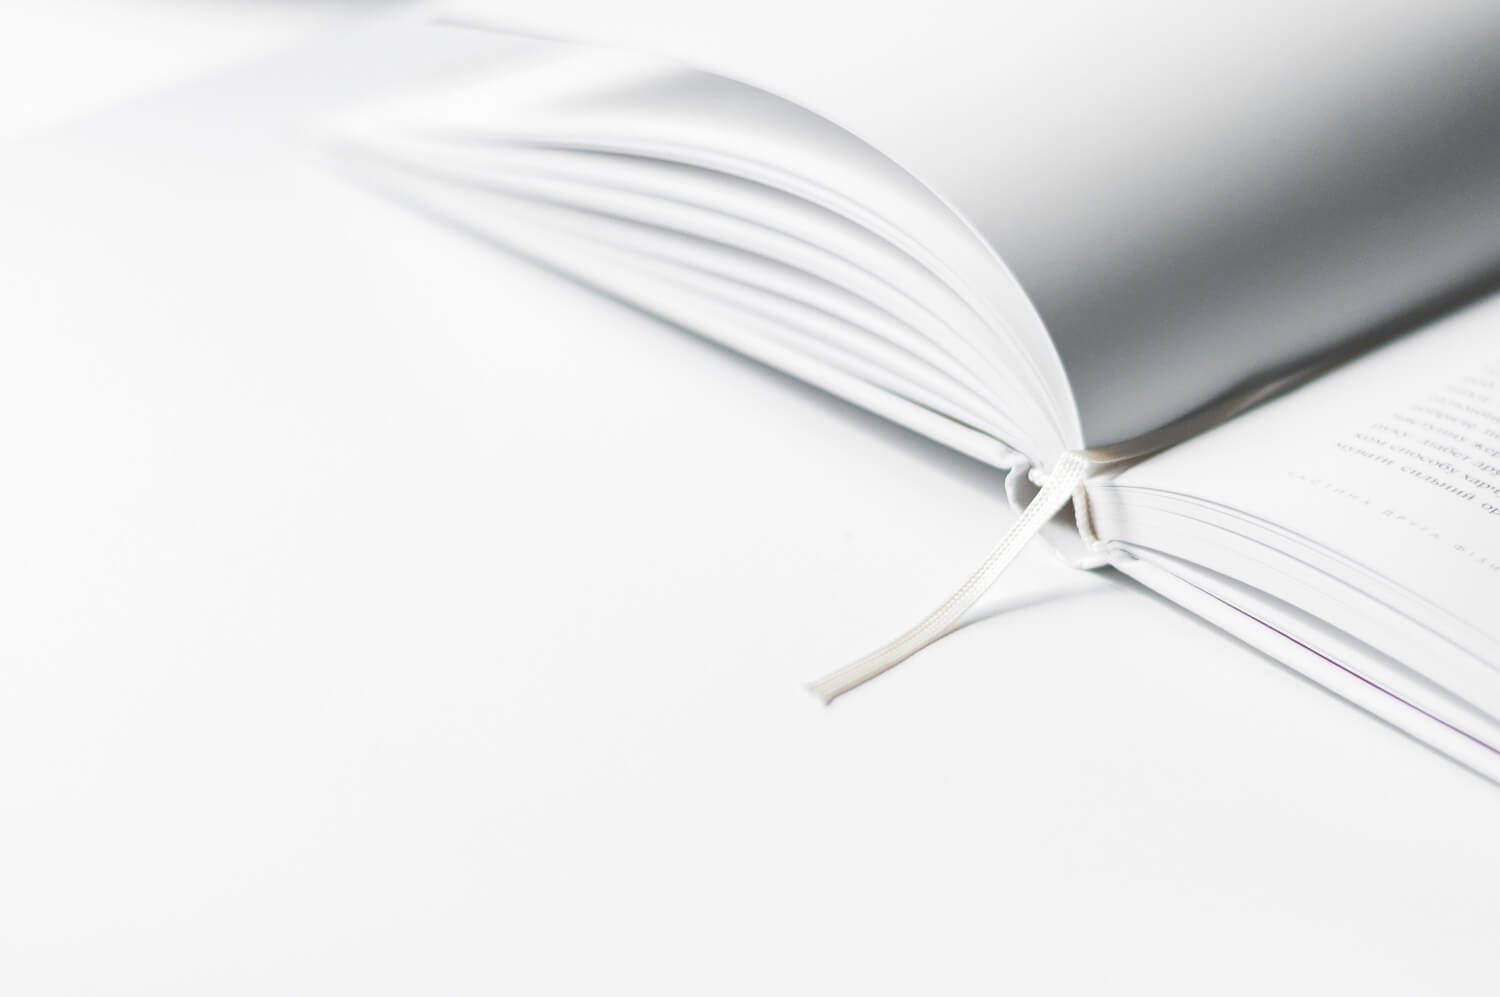 an open white book on a white background